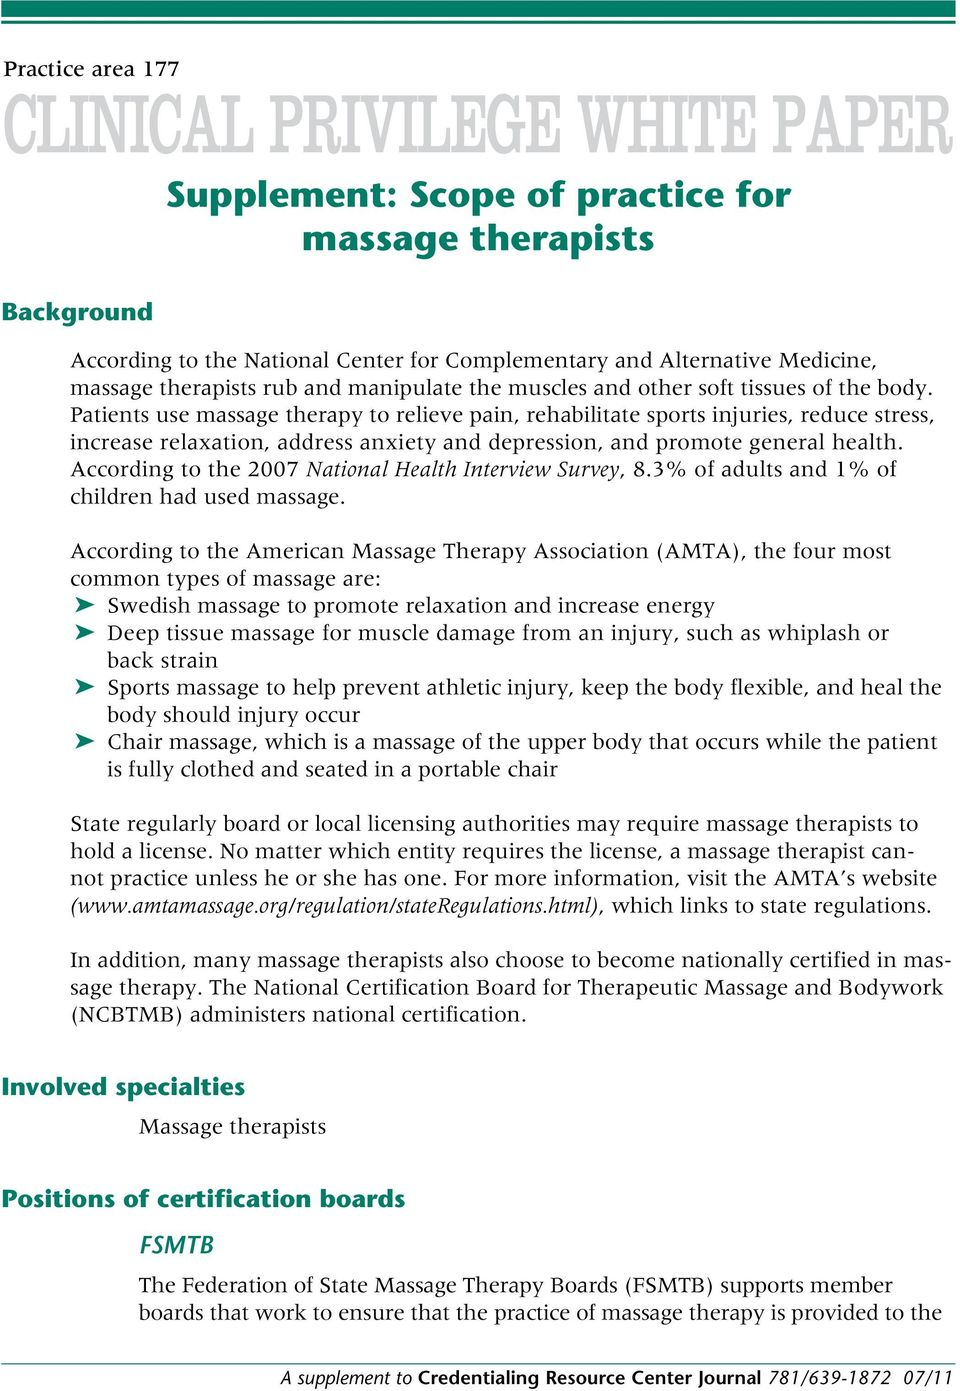 Supplement Scope Of Practice For Massage Therapists Pdf